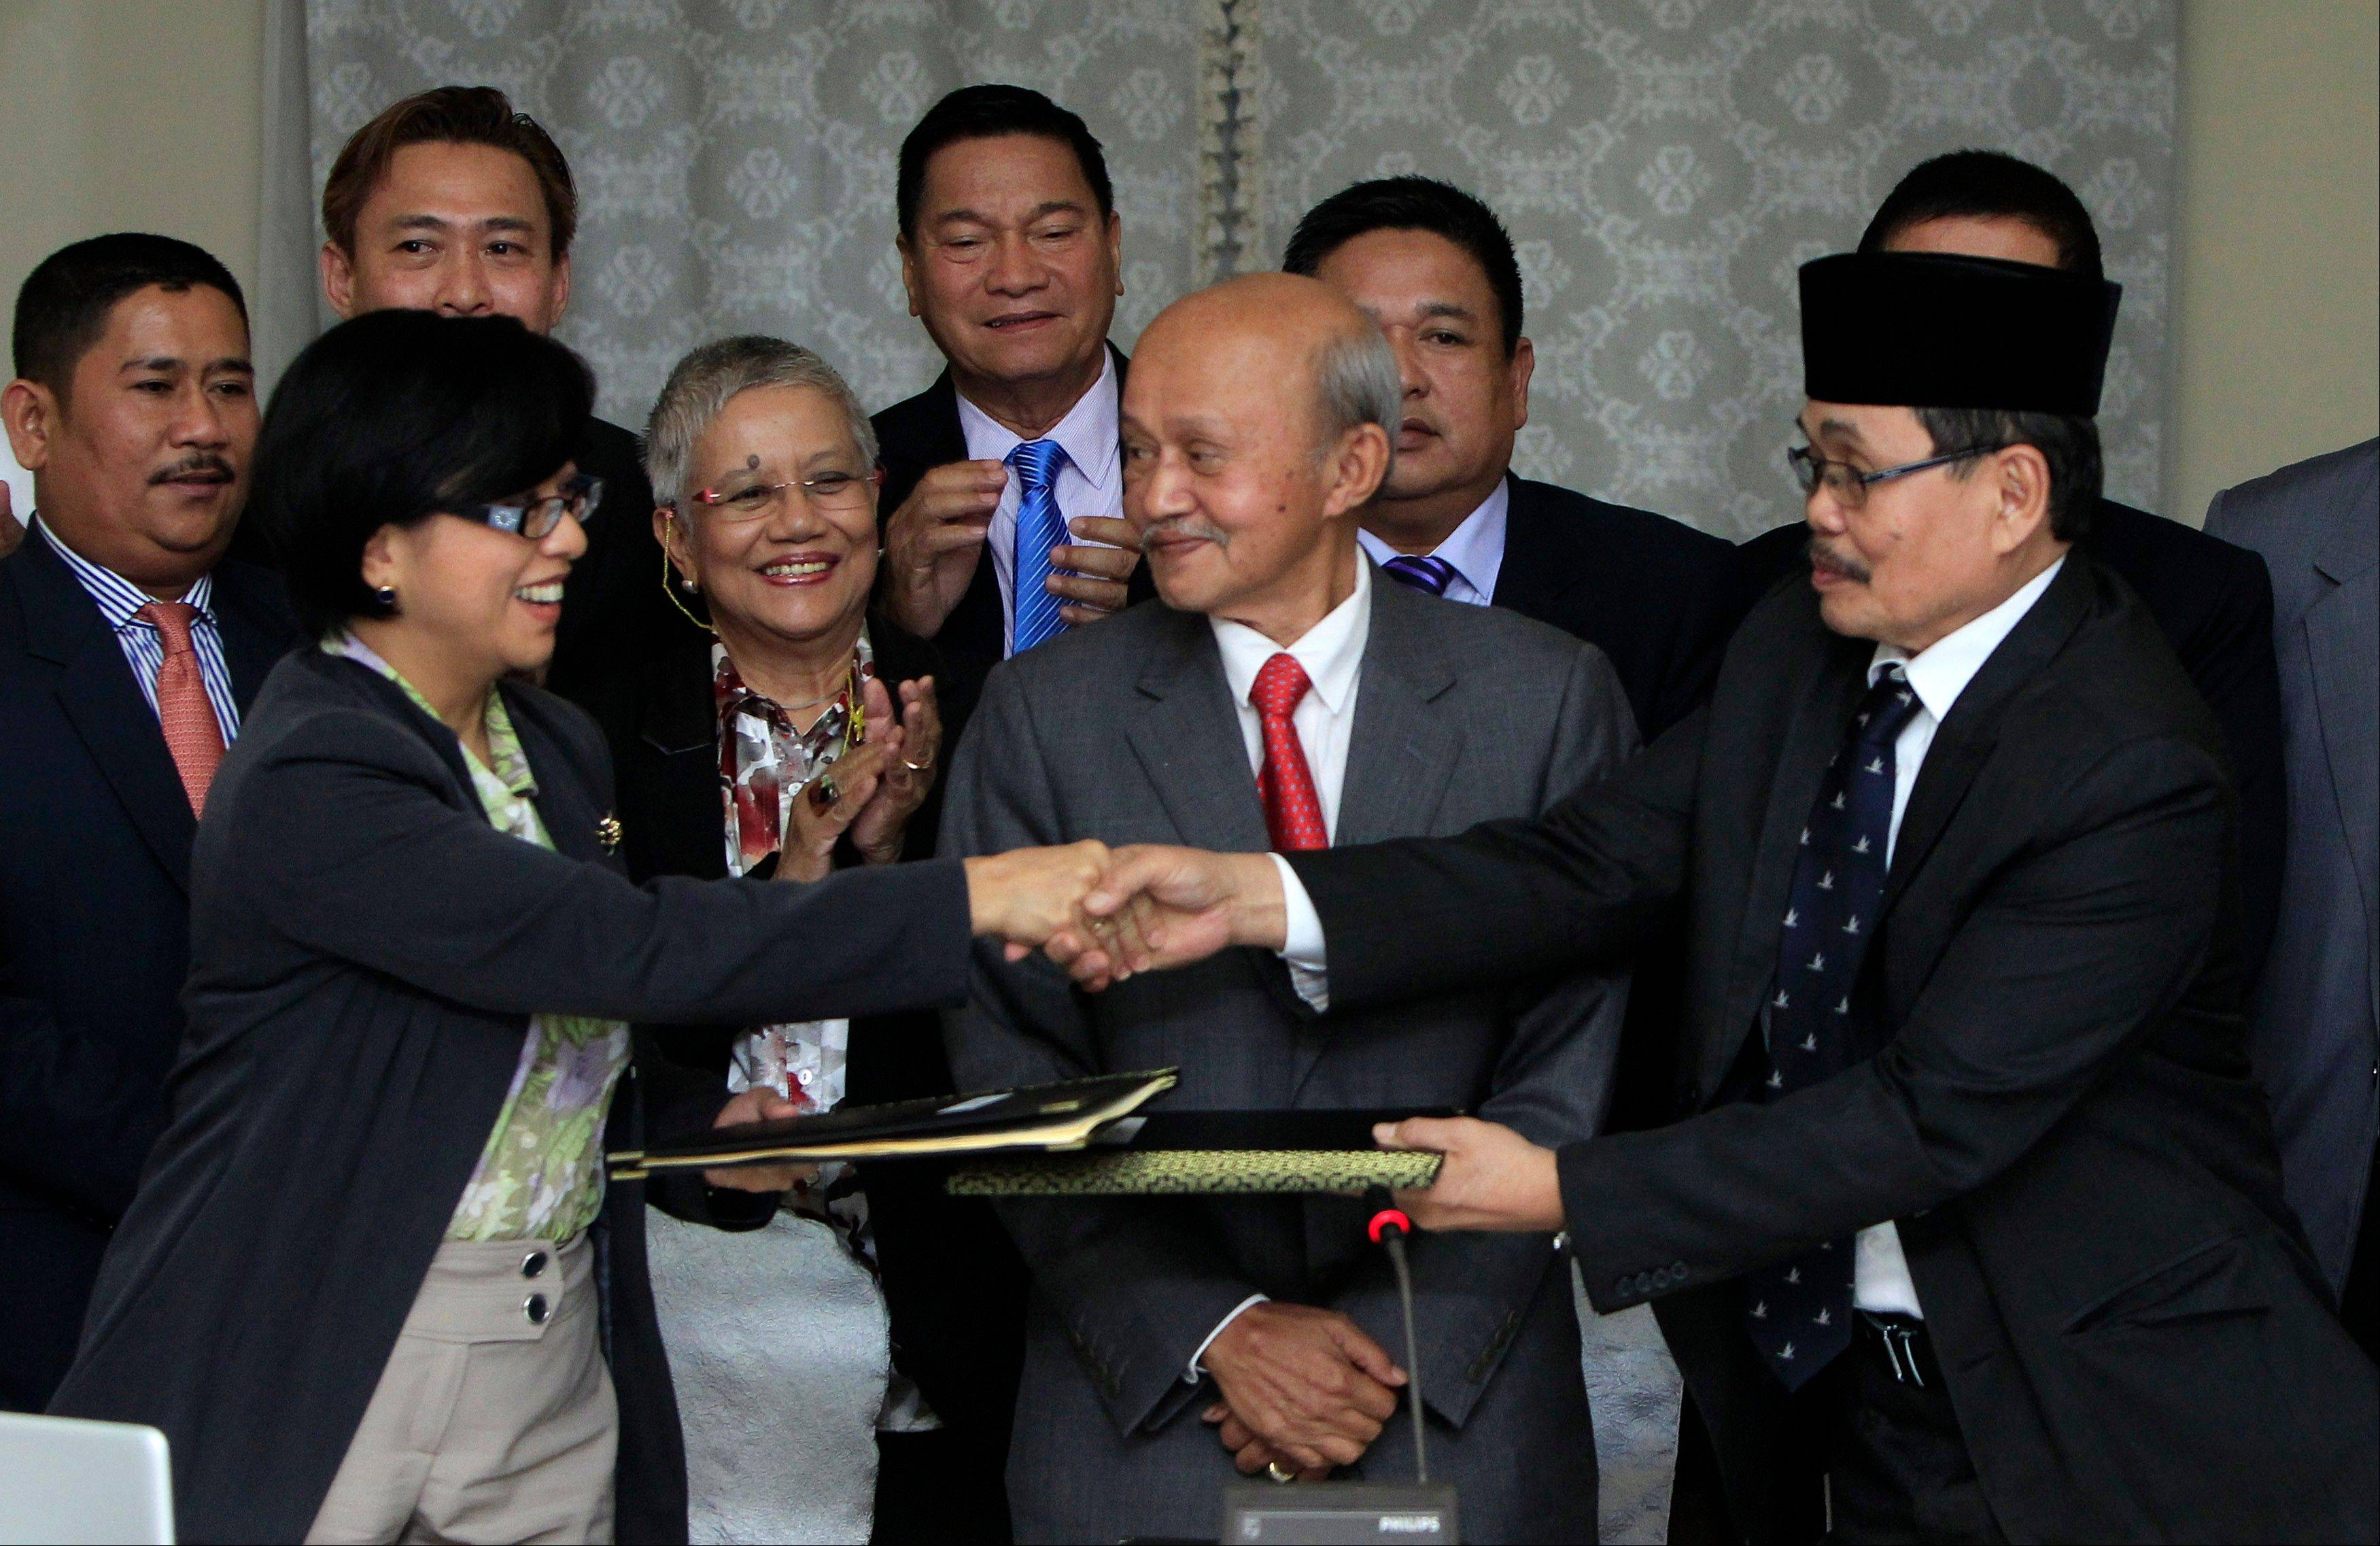 Miriam Coronel-Ferrer, front left, chairperson of Philippine Government Peace Panel, and Mohagher Iqbal, front right, chief negotiator for the Moro National Liberation Front, exchange signed documents Saturday as Malaysian facilitator Abdul Ghafar Tengku Mohamed, front center, witnesses after the 43rd GPH-MILF Exploratory Talks in Kuala Lumpur, Malaysia.